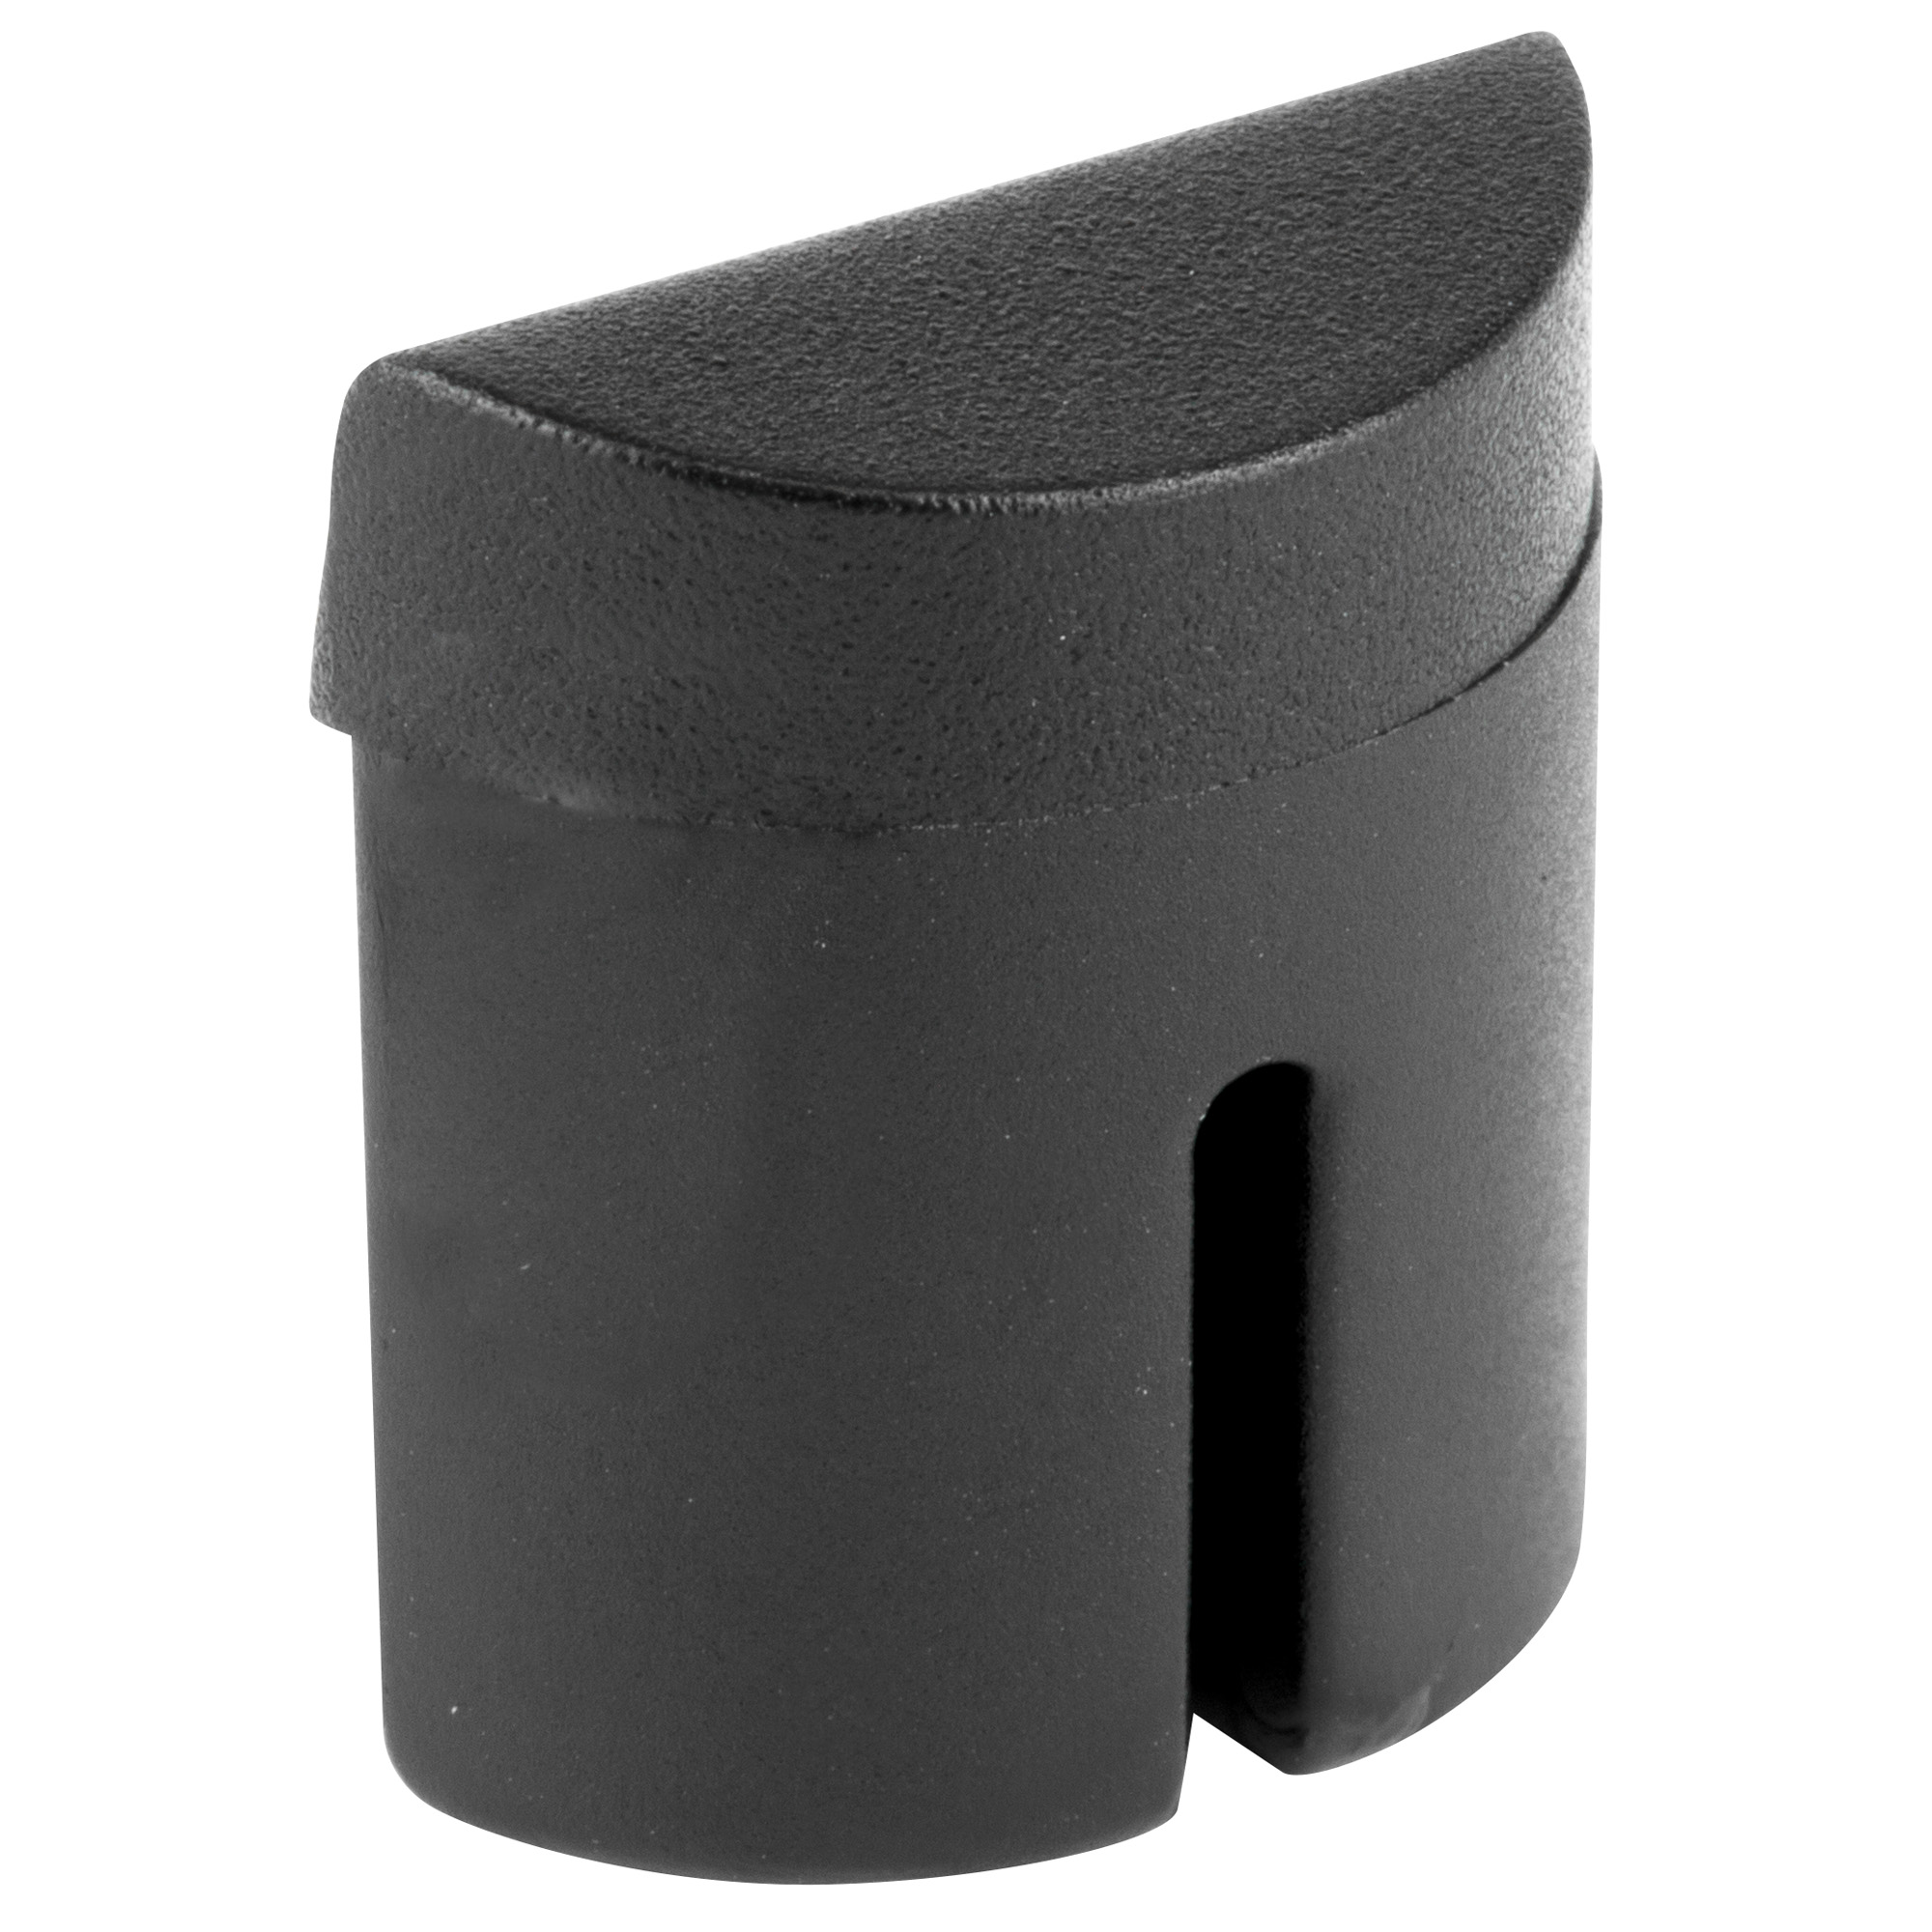 This unit fits in the bottom rear cavity of a Glock 42 & 43 utilizing a friction fit to secure it in the frame.